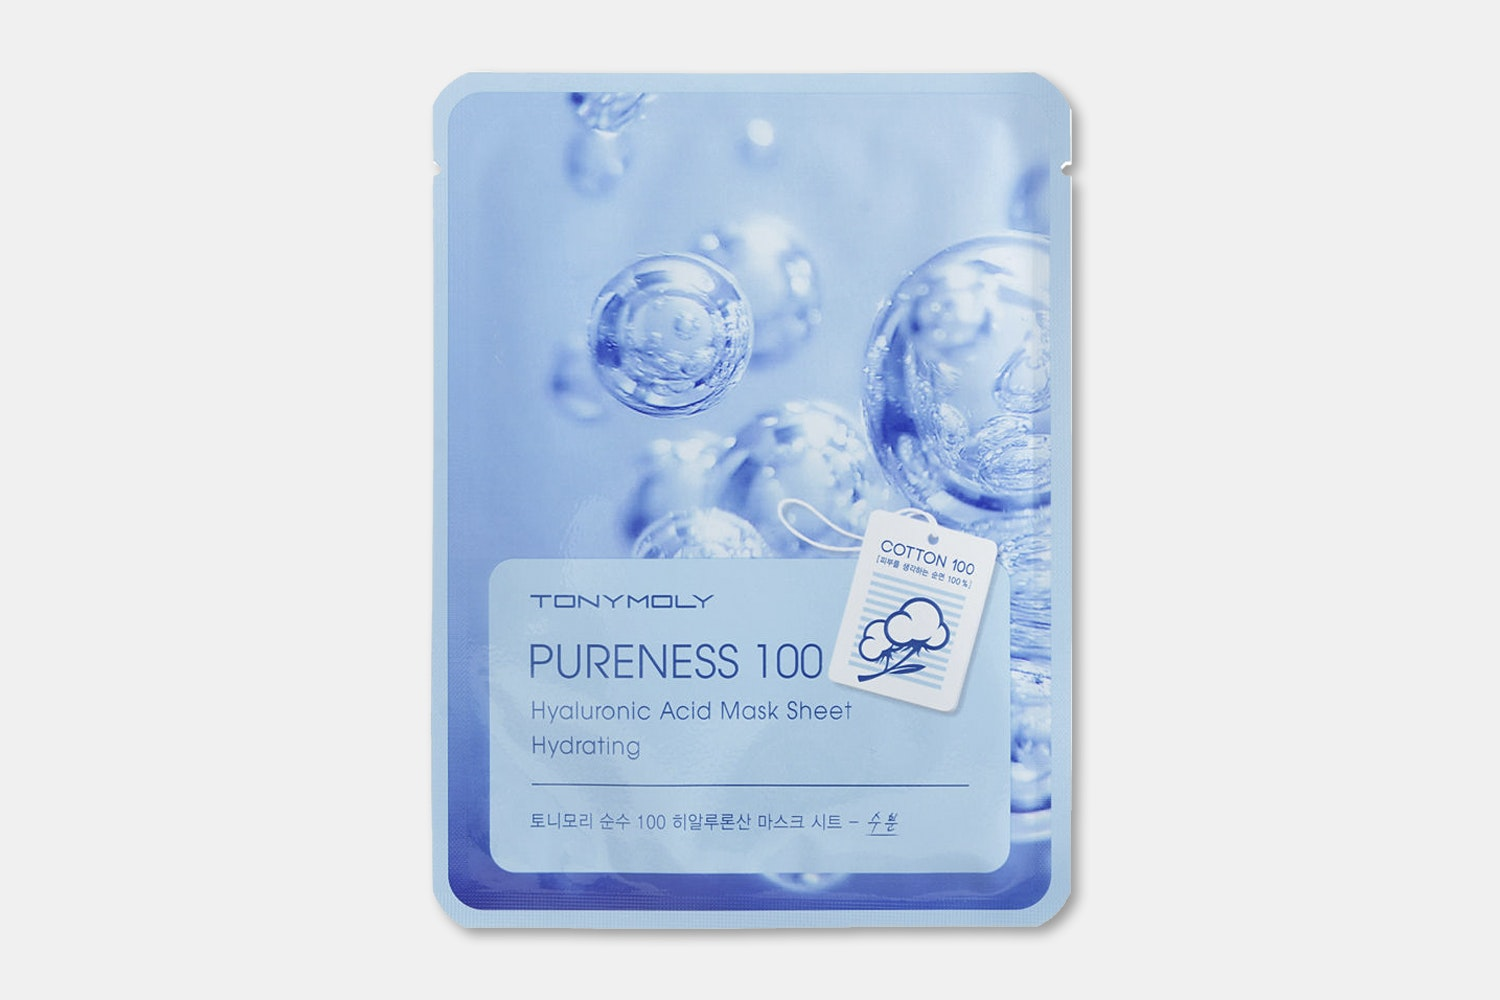 Pureness 100 hyaluronic acid mask